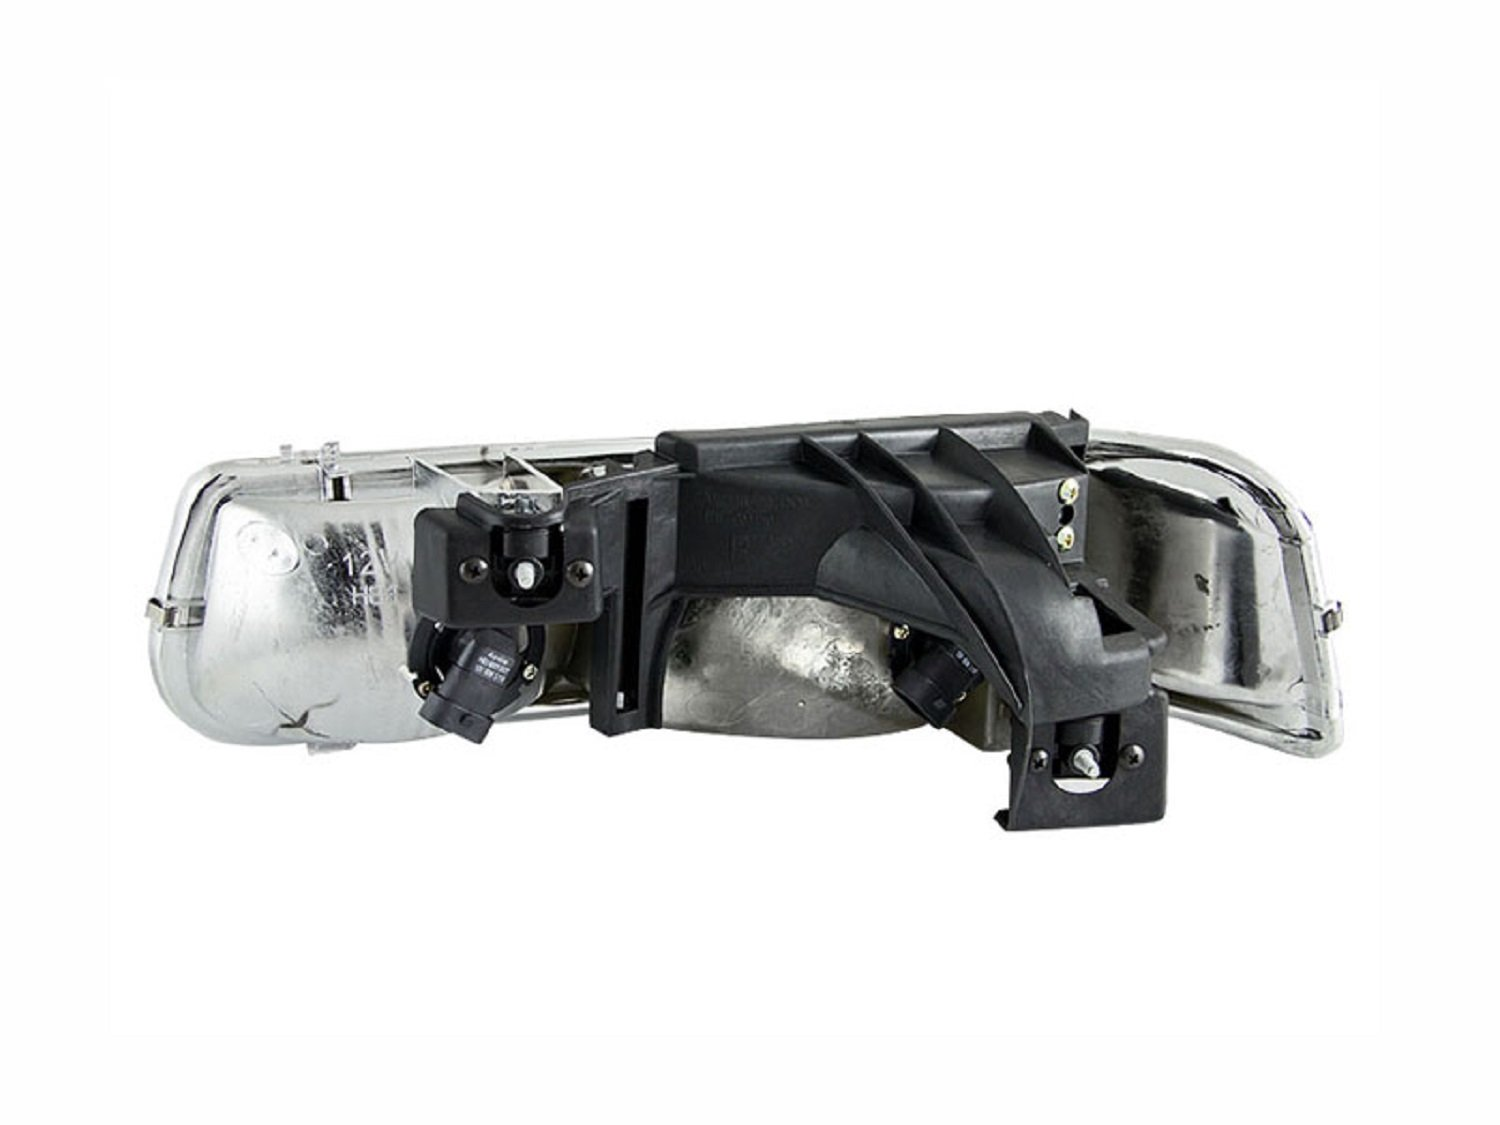 Anzo USA 111155 Chevrolet Silverado Black Clear Headlight Assembly Sold in Pairs